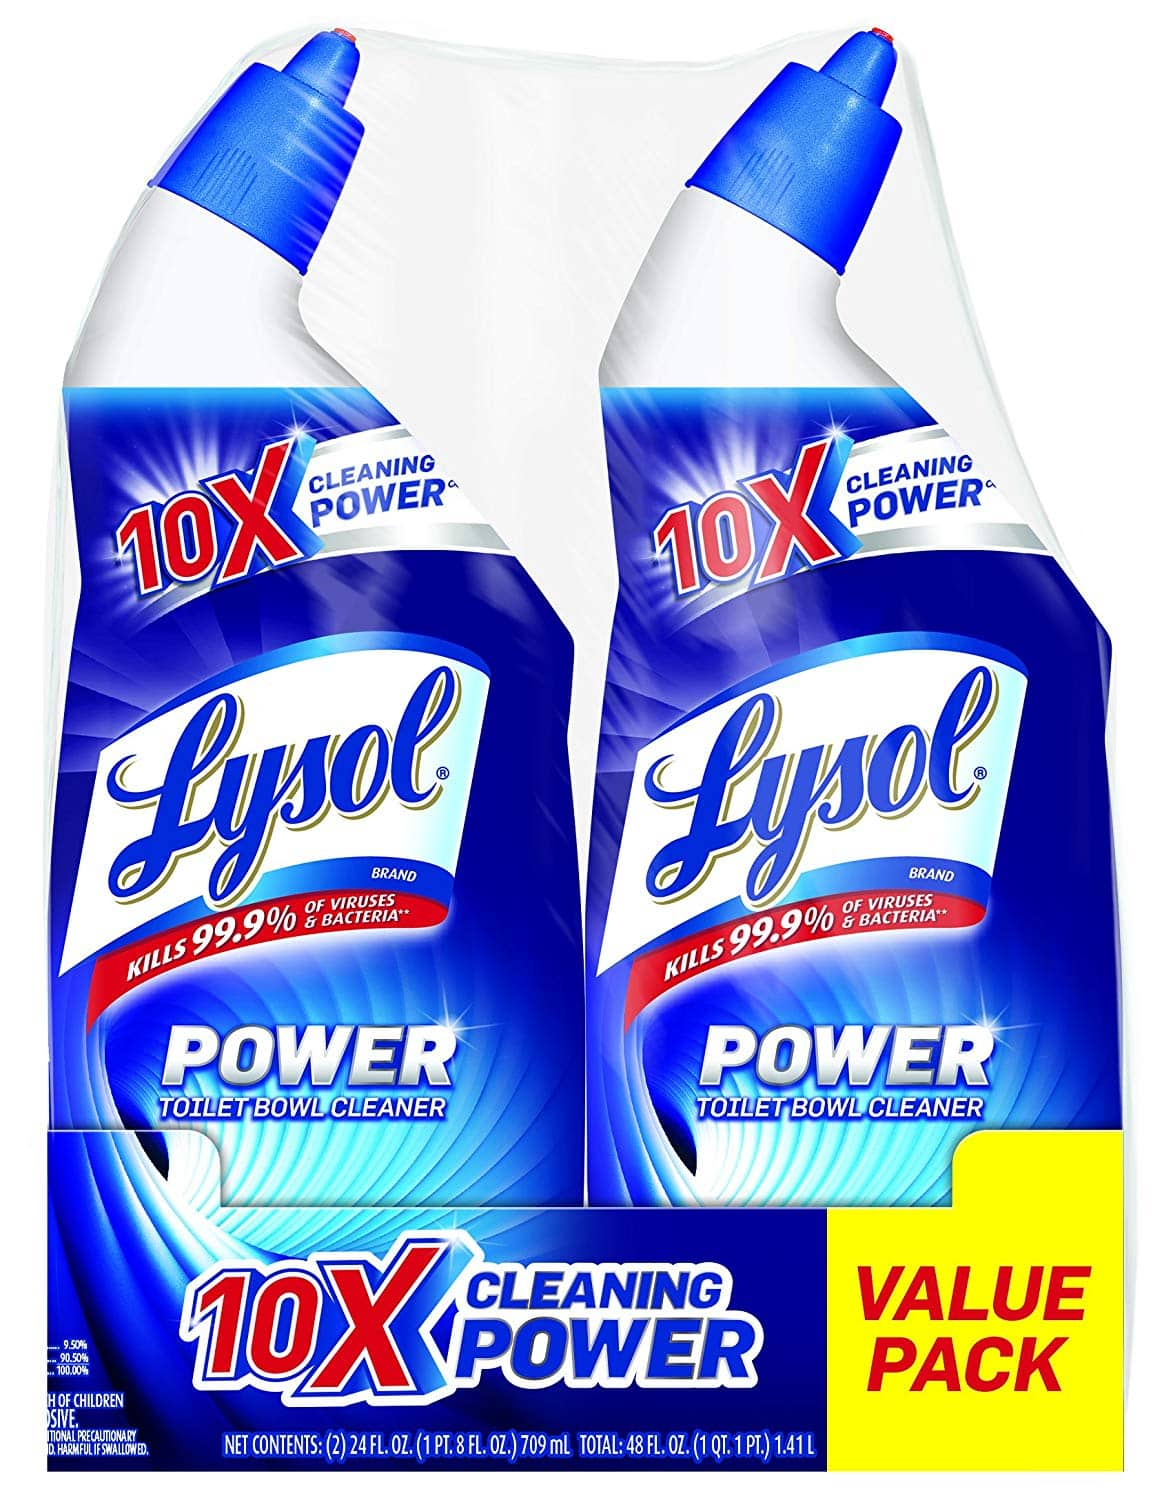 4-Pack of 24oz Lysol Power Toilet Bowl Cleaner $3.35 or less w/ S&S + free s/h